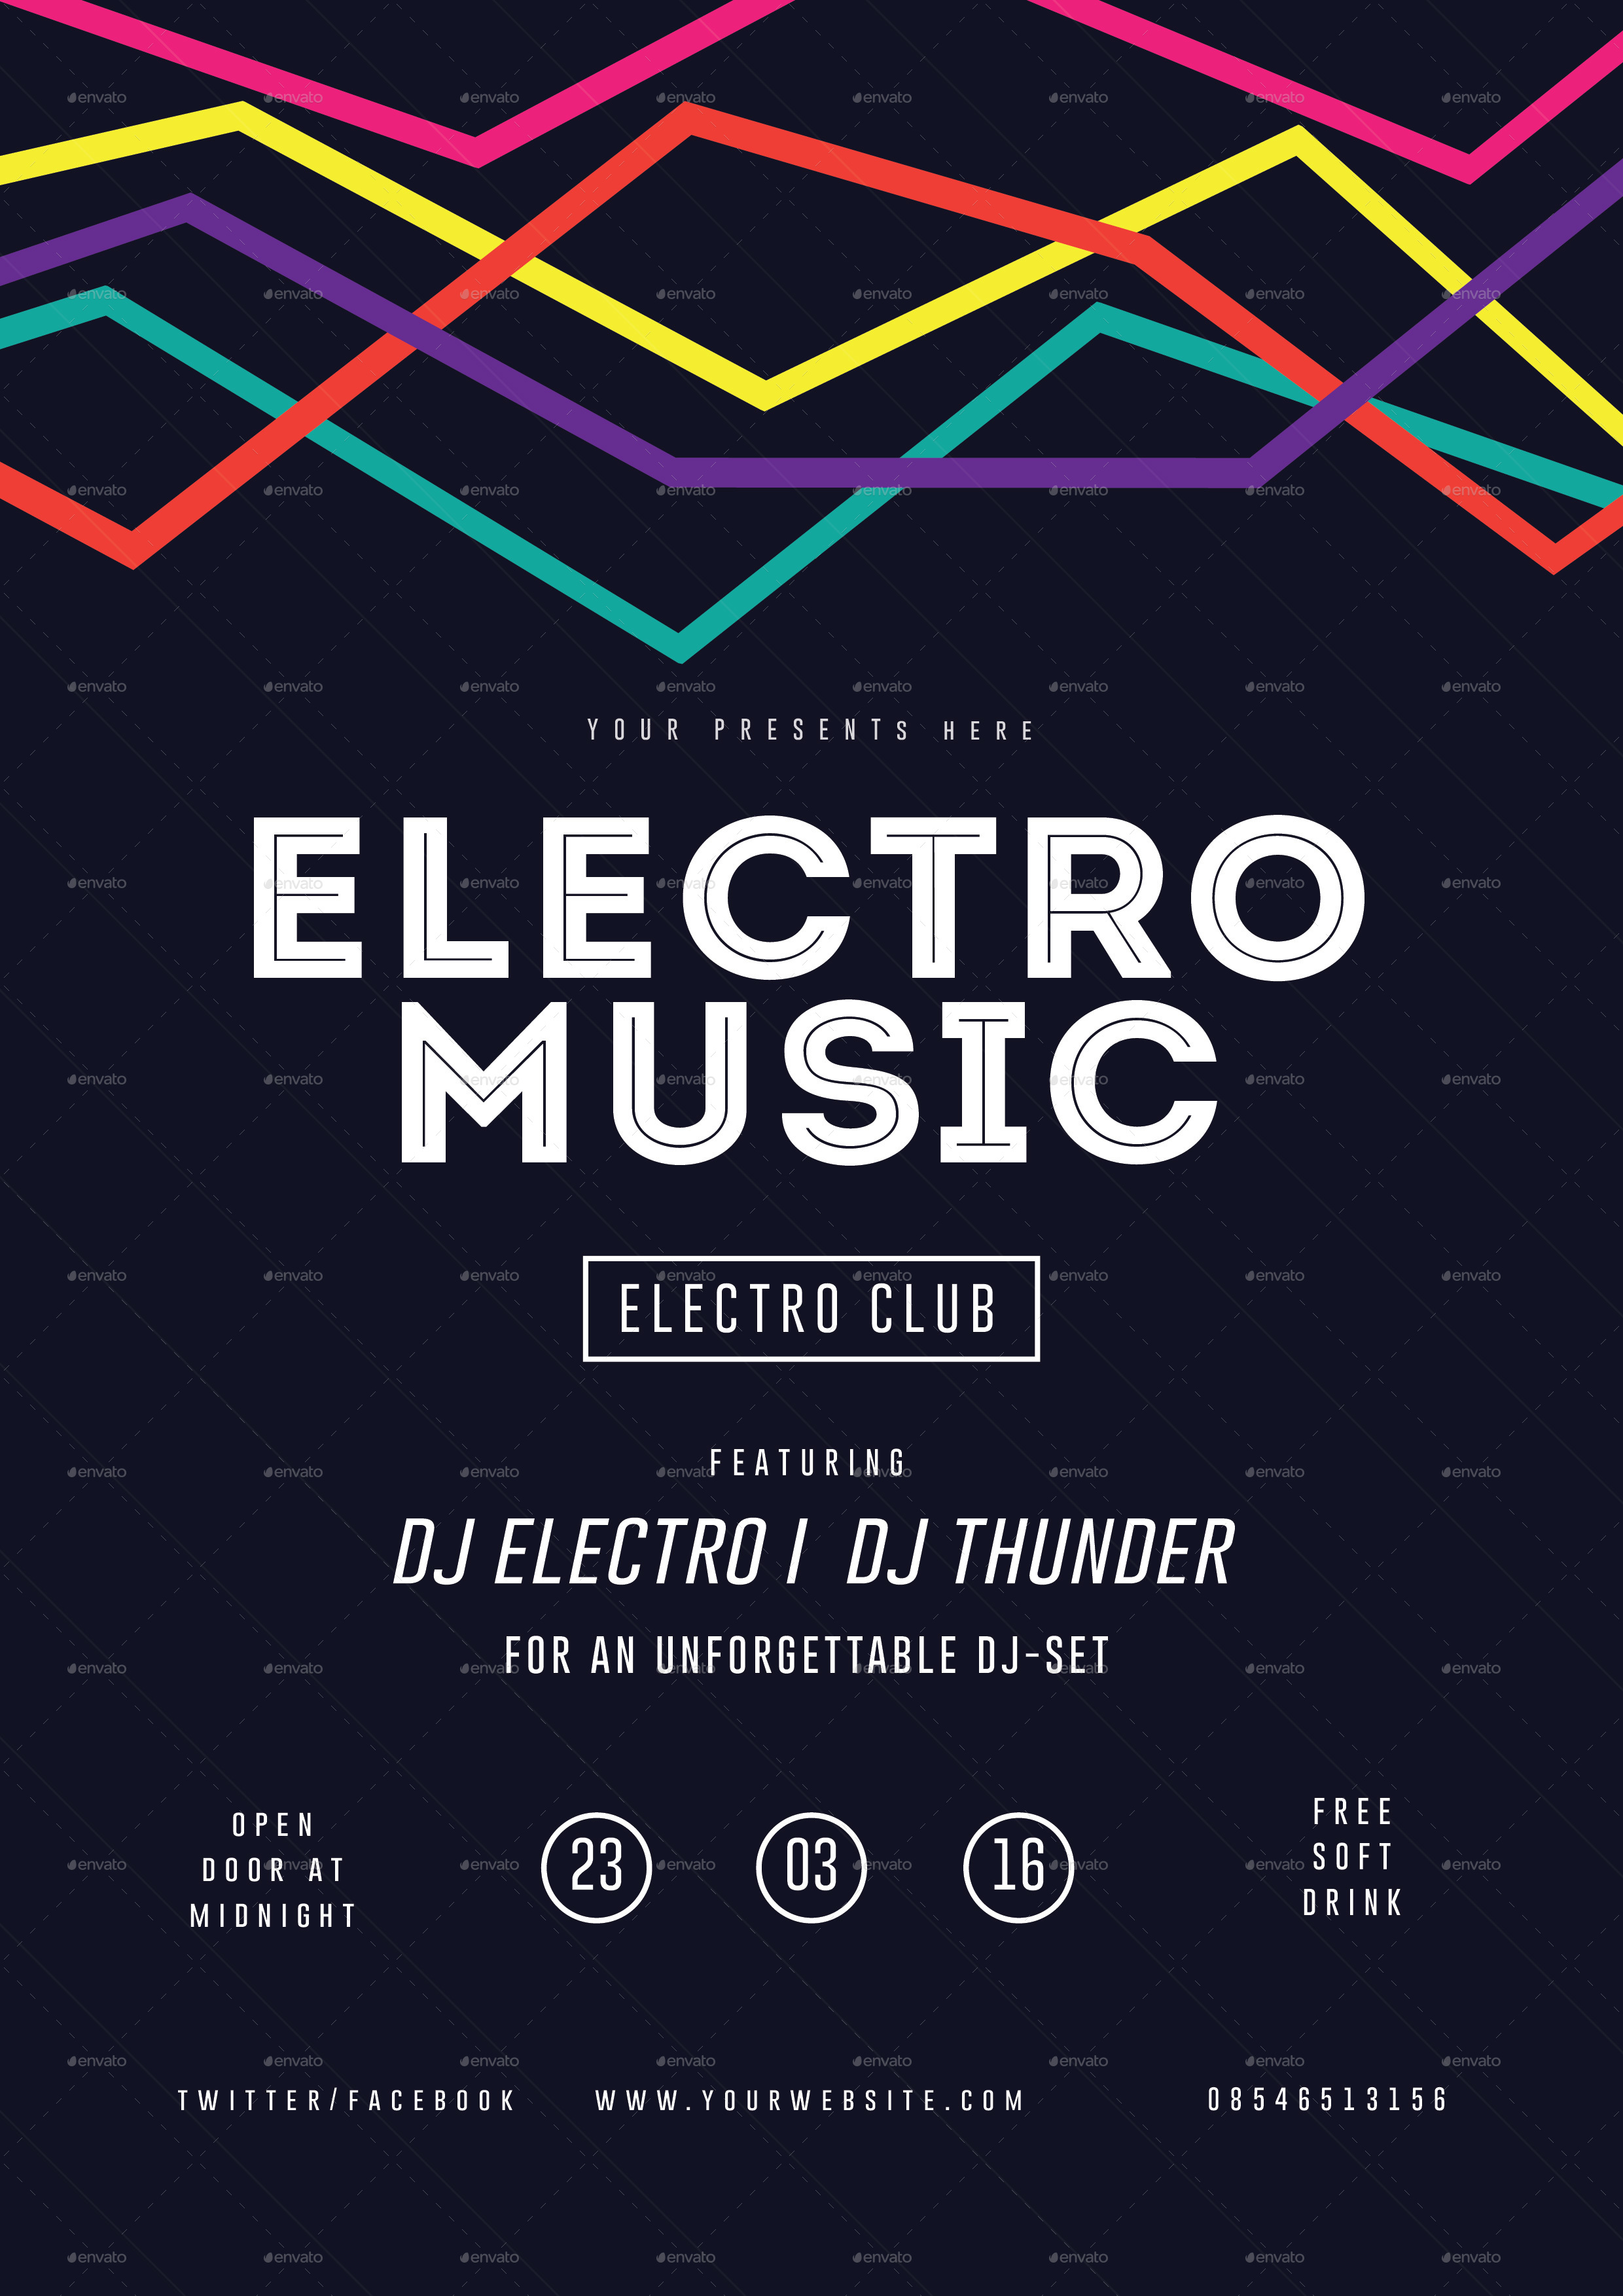 Electro Musik Flyer Poster by lilynthesweetpea – Electro Flyer